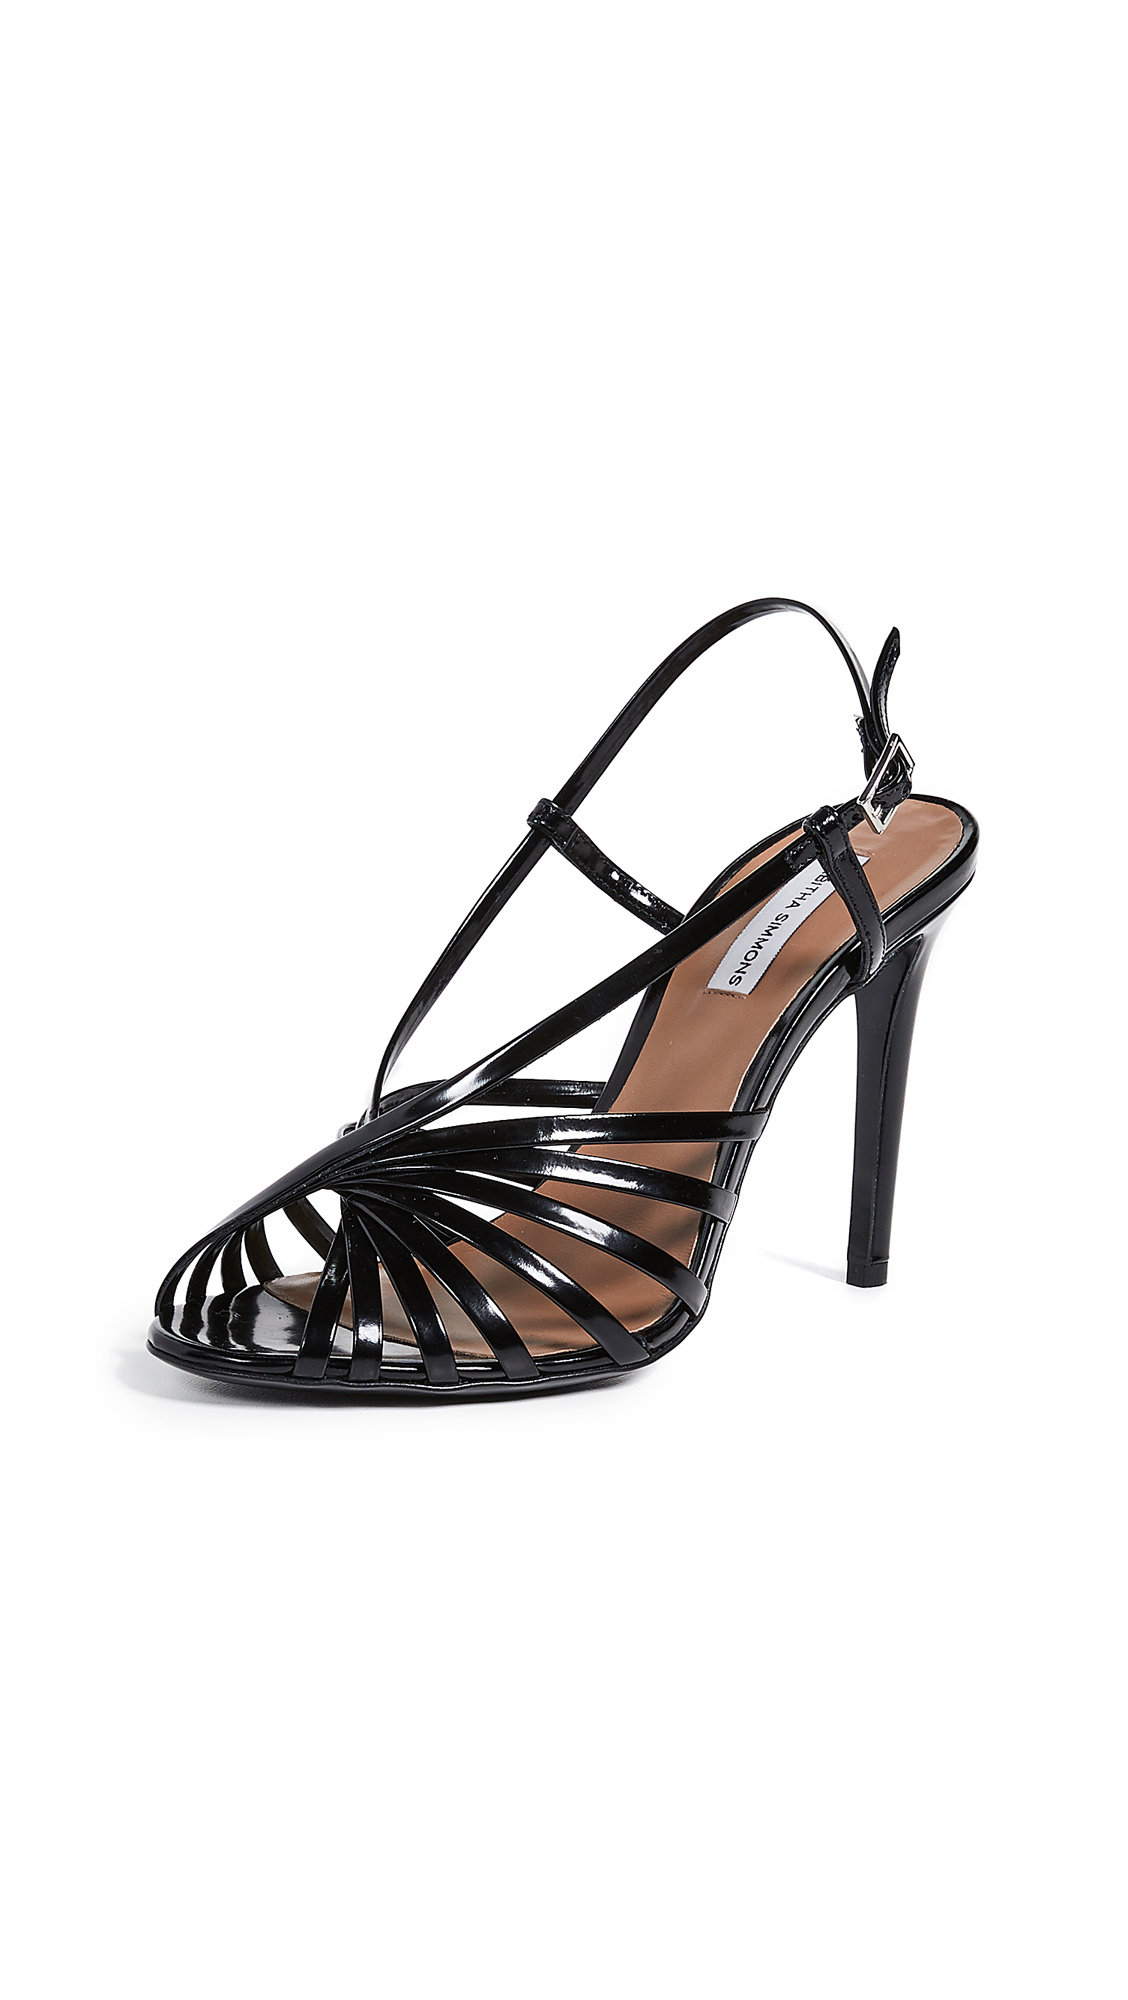 Tabitha Simmons Jazz Sandals - Black